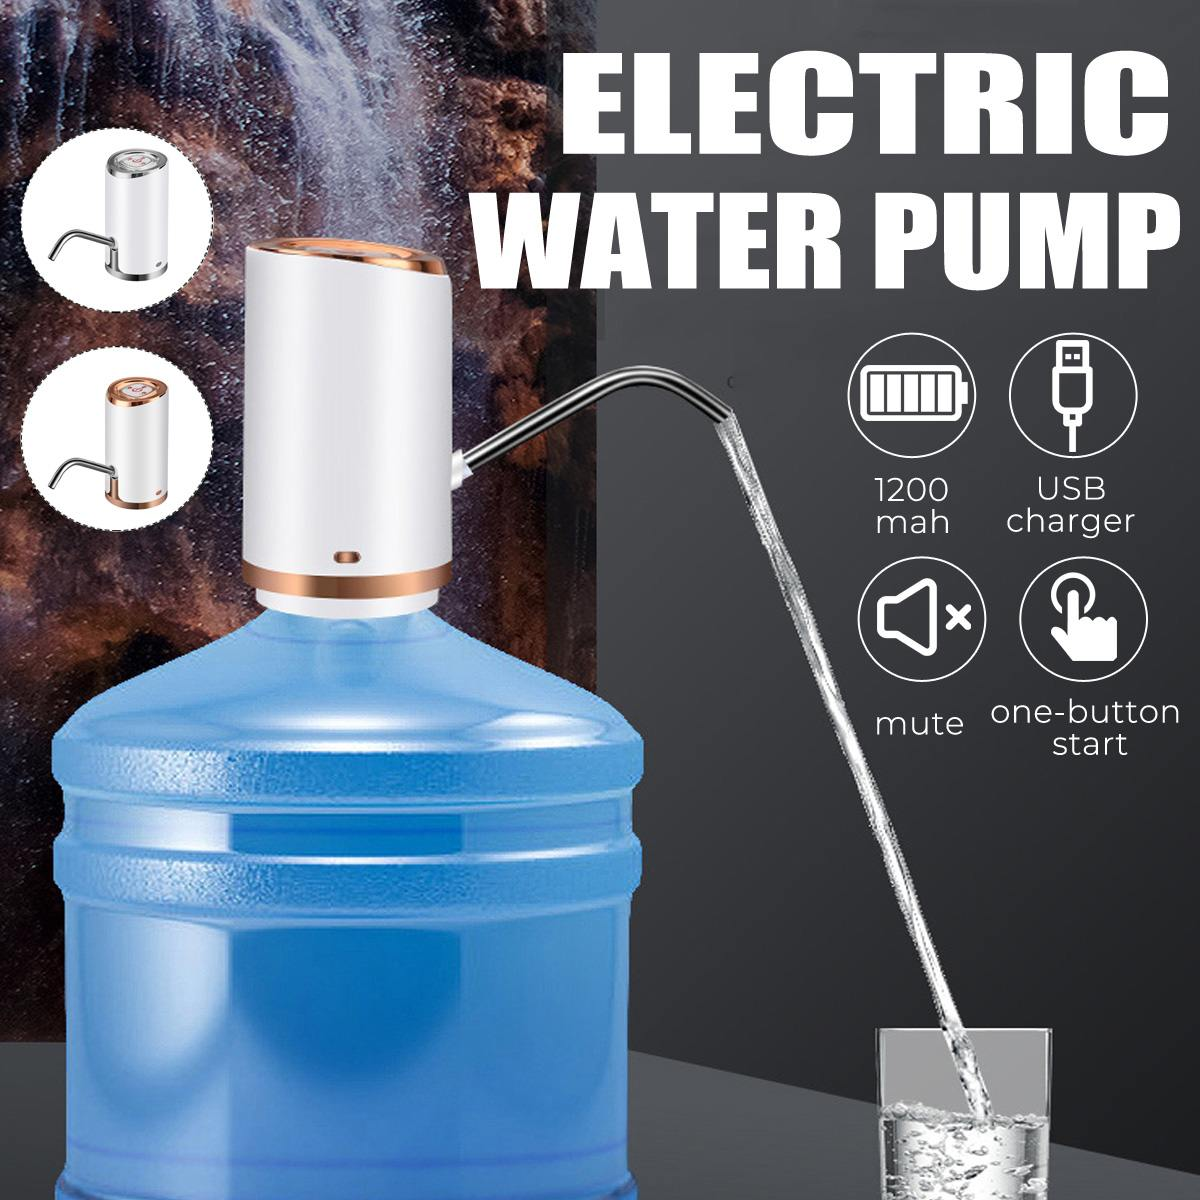 Portable Wireless Electric Automatic Water Pump Dispenser Gallon Drinking Bottle